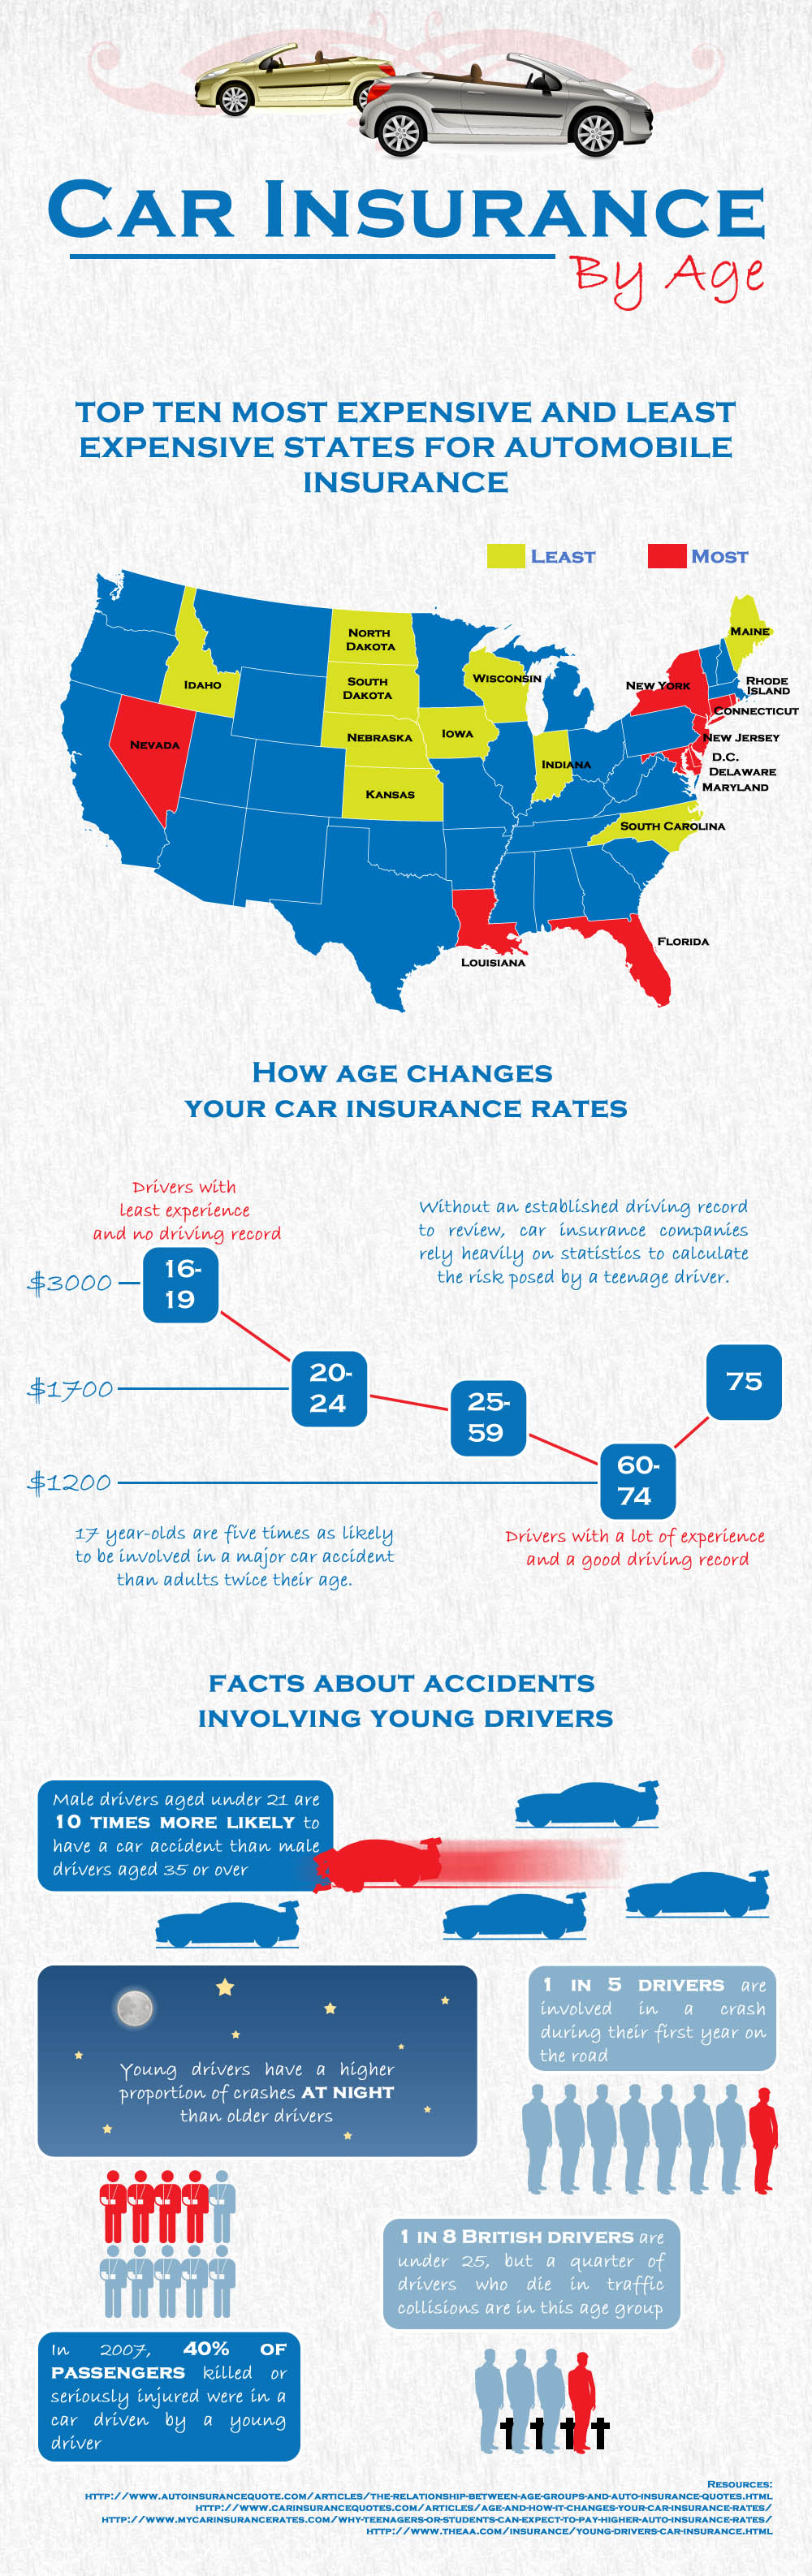 Car-Insurance-By-Age-in the US infographic